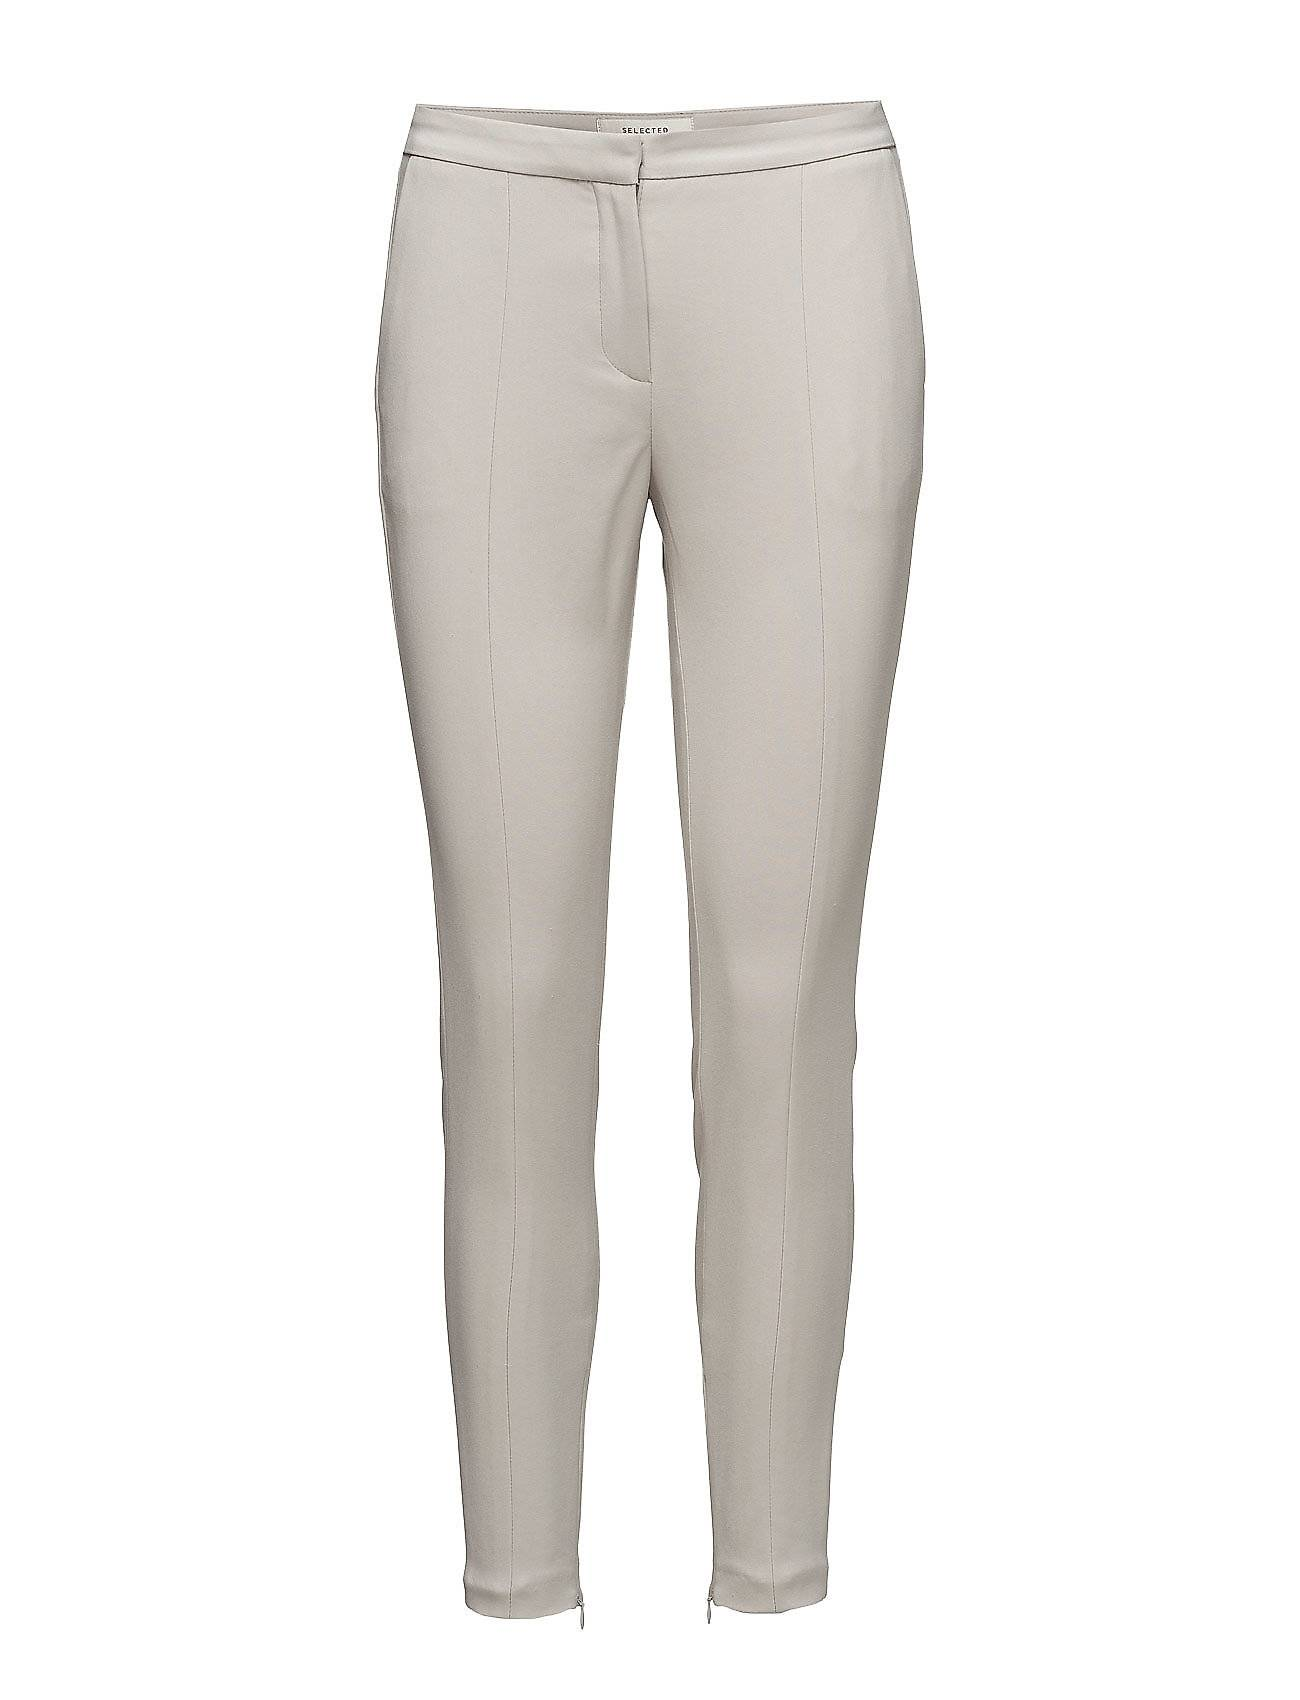 Selected Femme Sfmuse Cropped Mw Pant - Dove